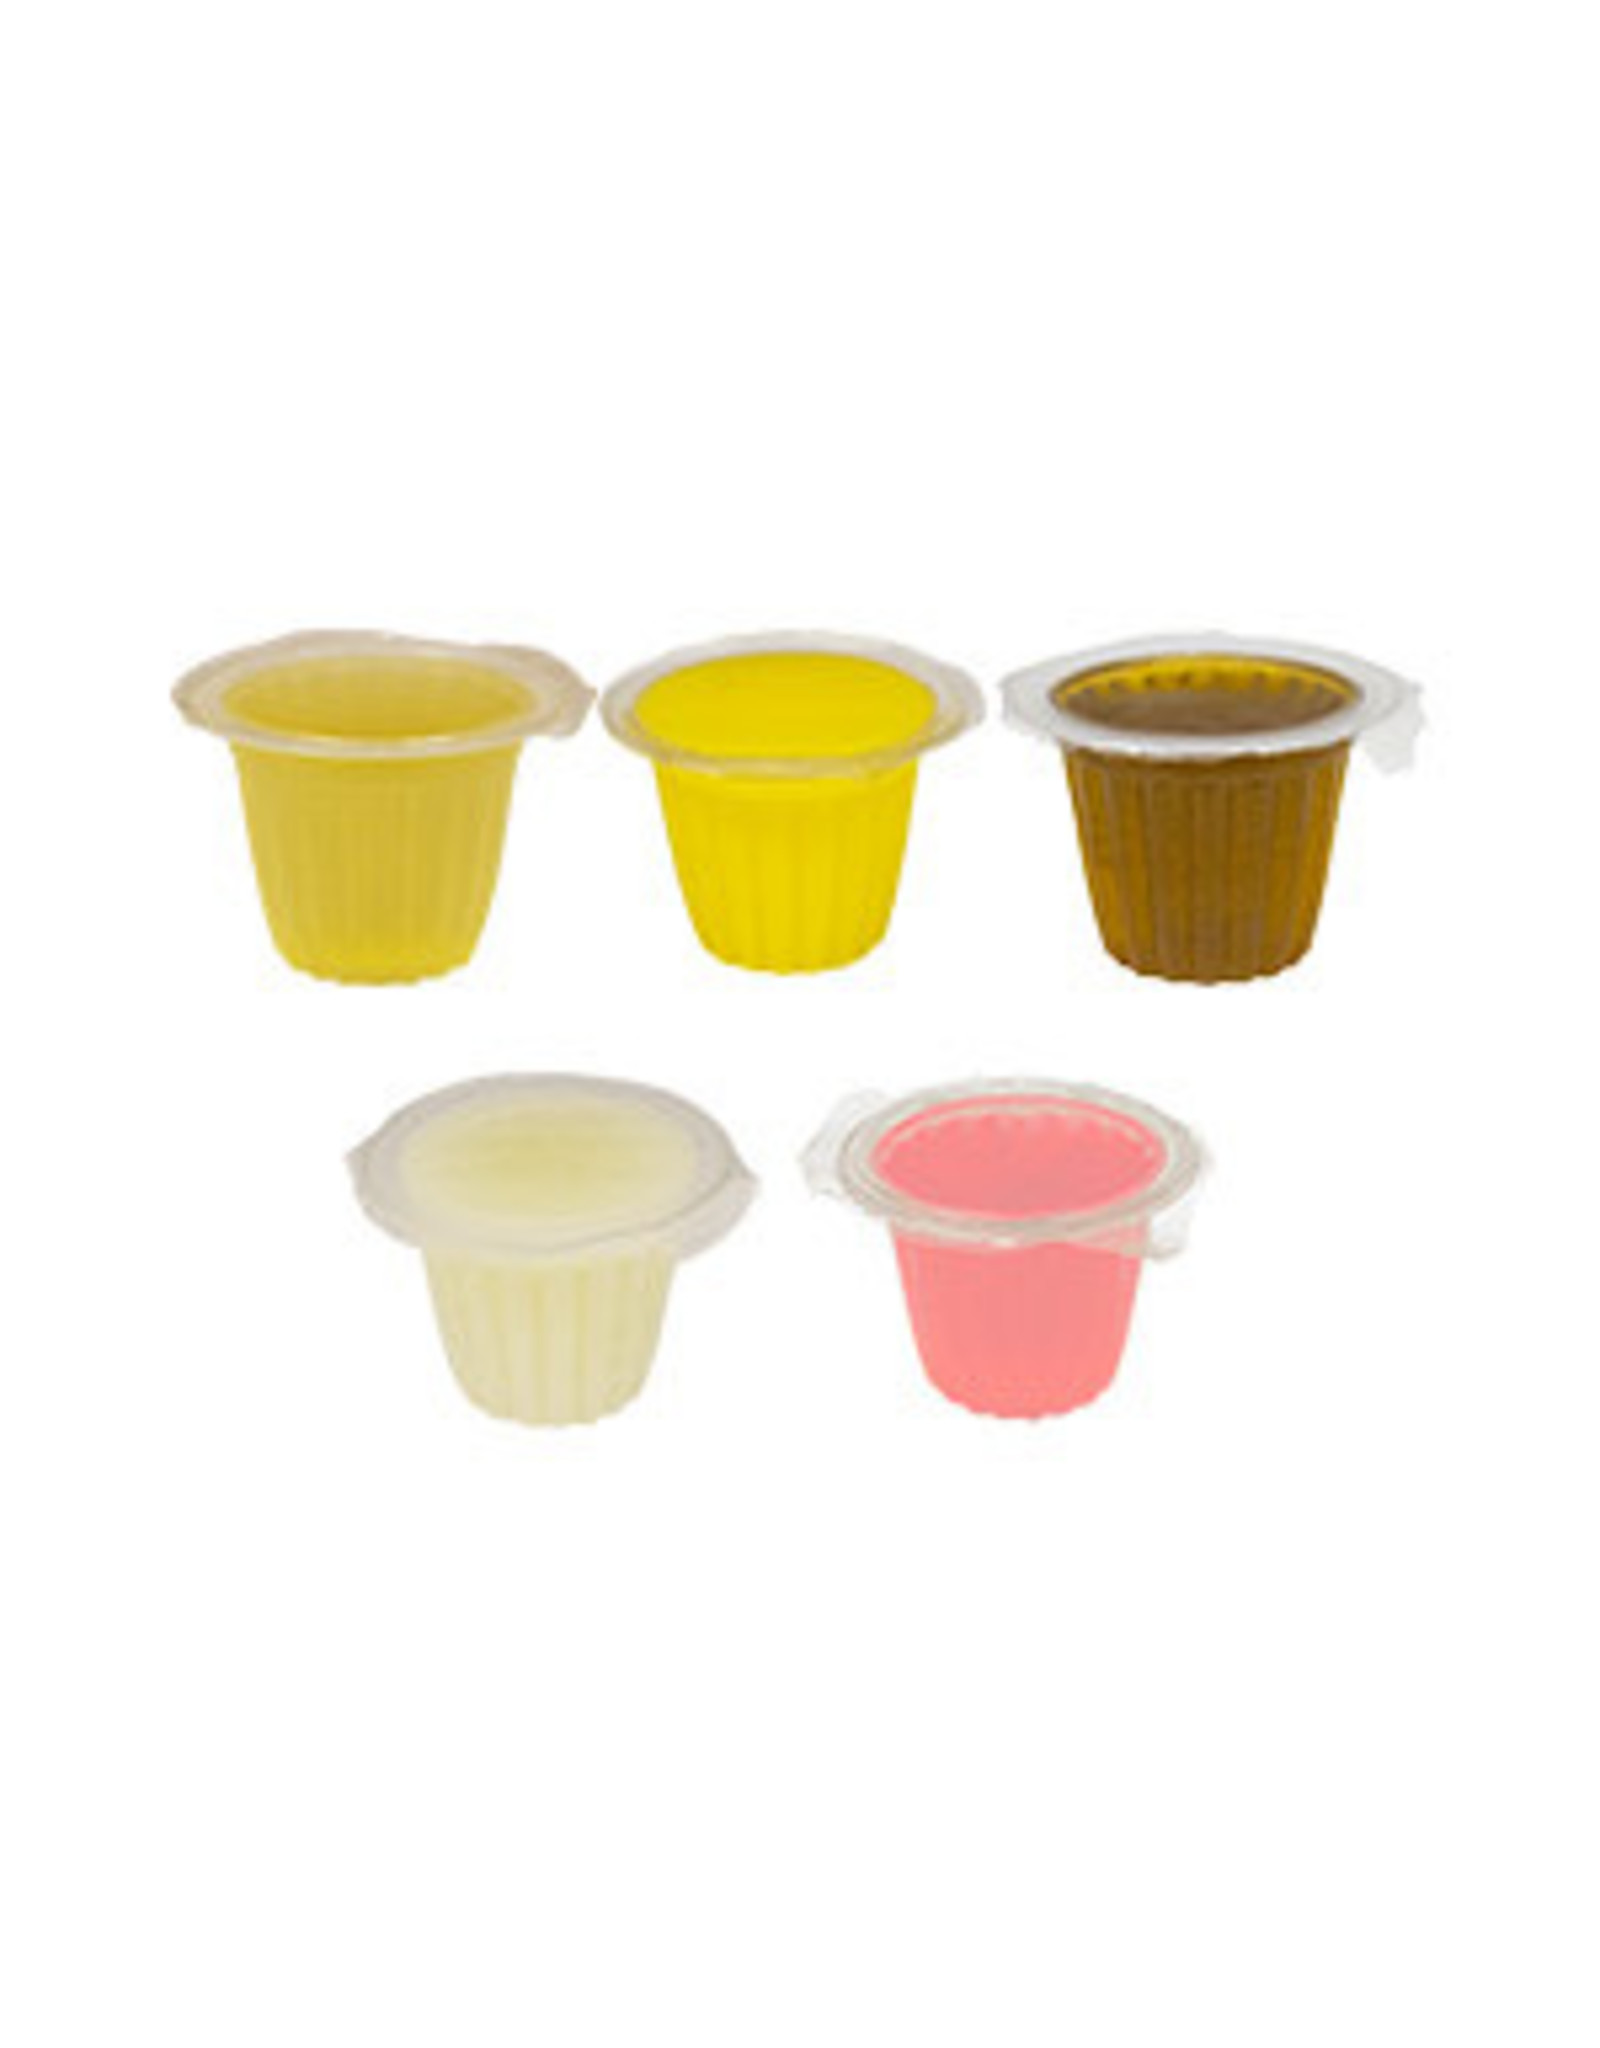 Pro Rep Jelly Pots Mixed Flavours Single